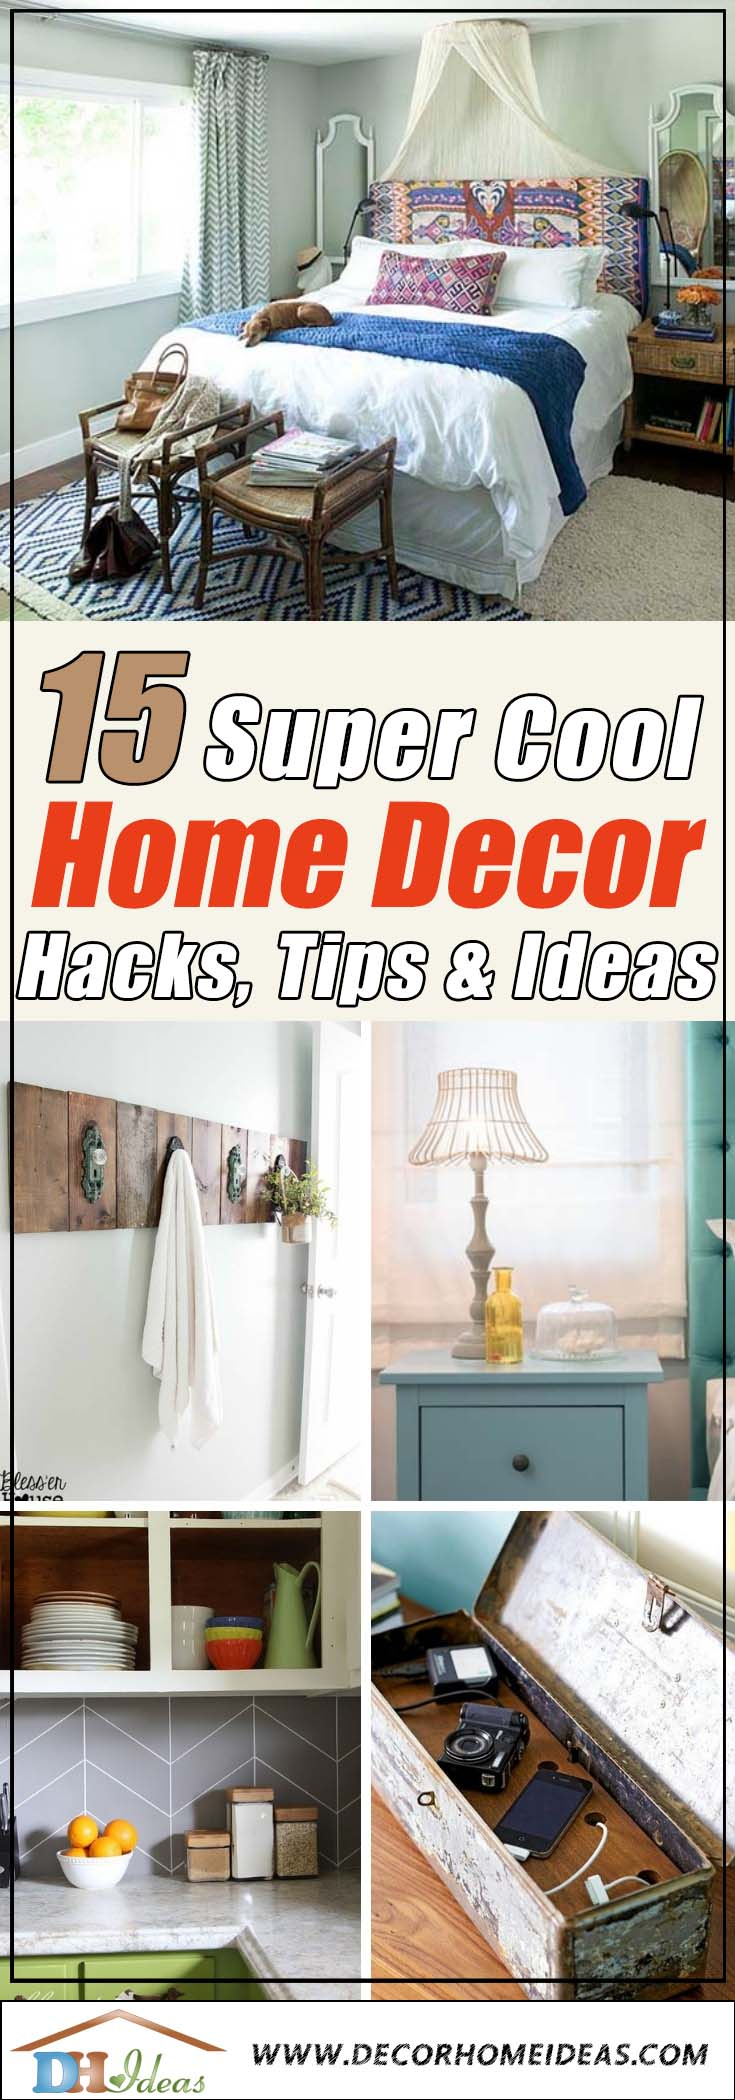 Home Decor Hacks #homedecor #hacks #tips #ideas #decorhomeideas